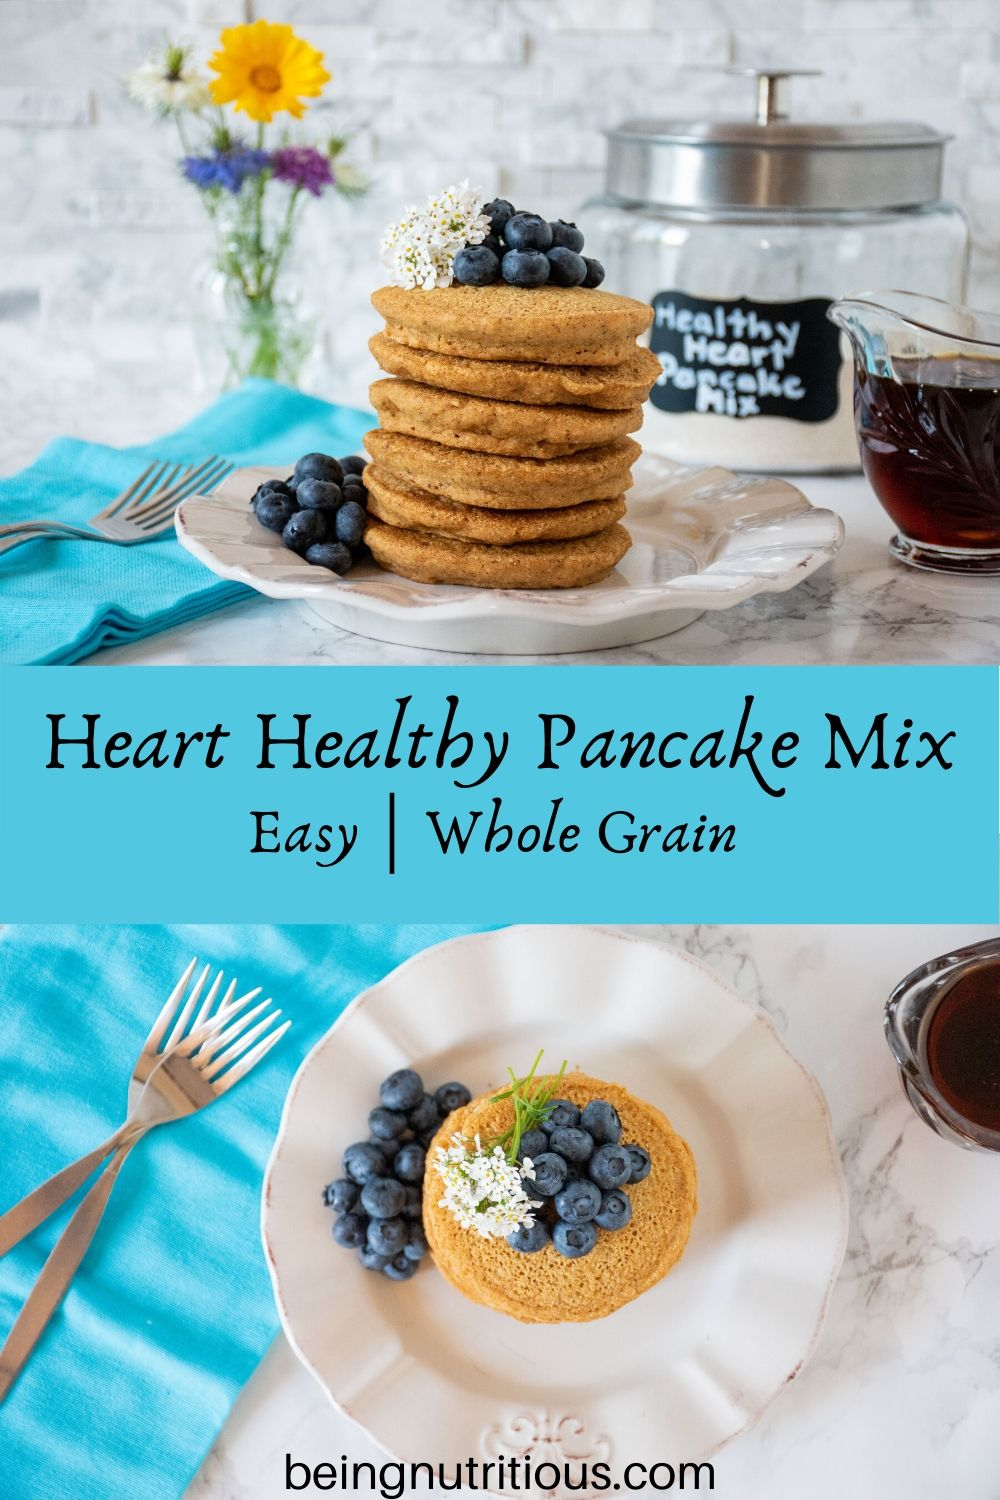 Stacked image. Top image is Stack of 6 whole wheat pancakes, with a pile of fresh blueberries and white flowers on top. Glass jar of heart healthy pancake mix is visible in the background. Bottom image is an overhead of the dish of pancakes.